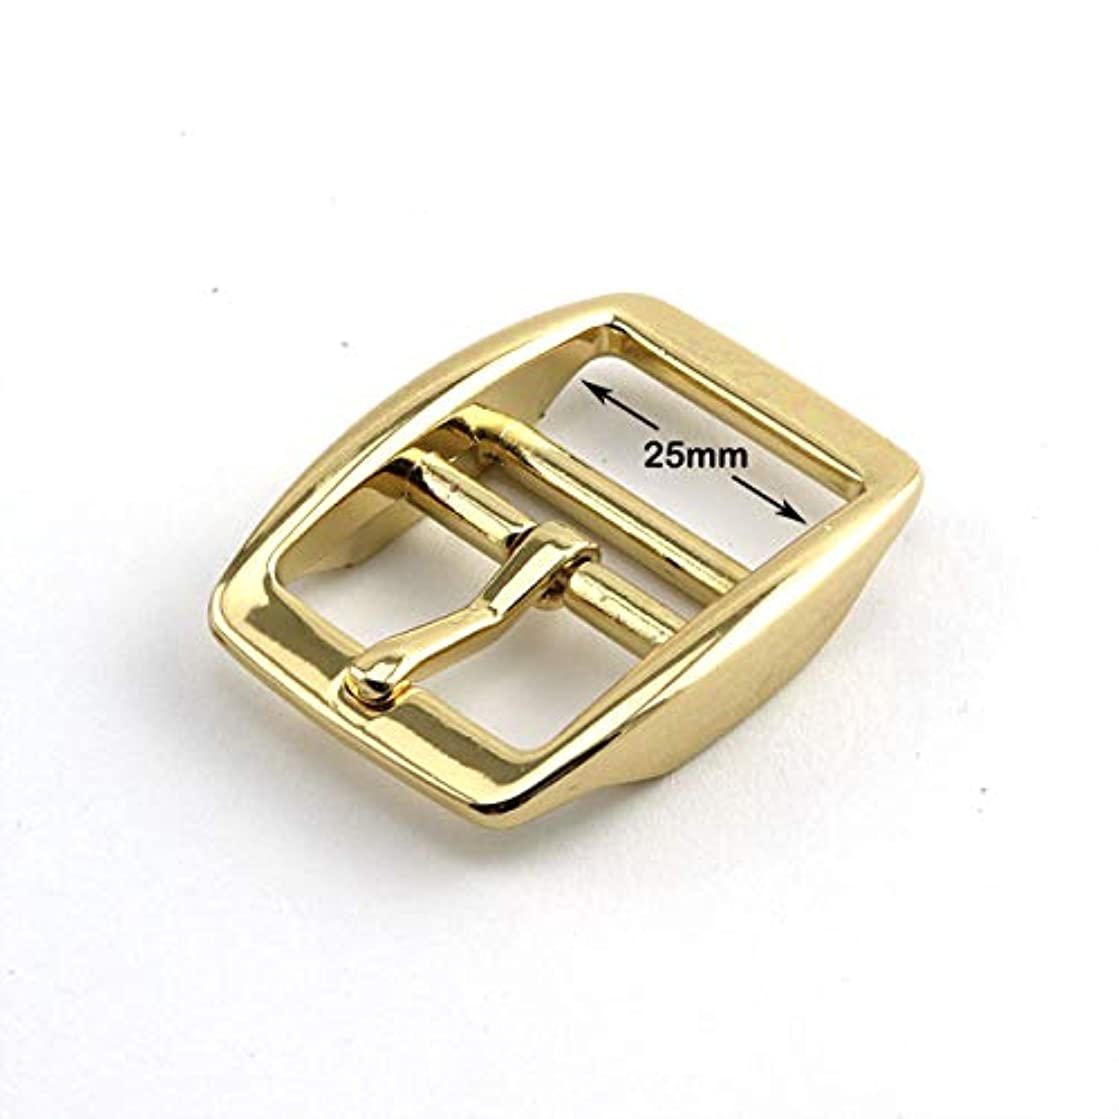 PZRT 2-Pack Mirror-Like Finished 1 Inch Tongue Buckle Light Gold Color Dog Collar Buckles